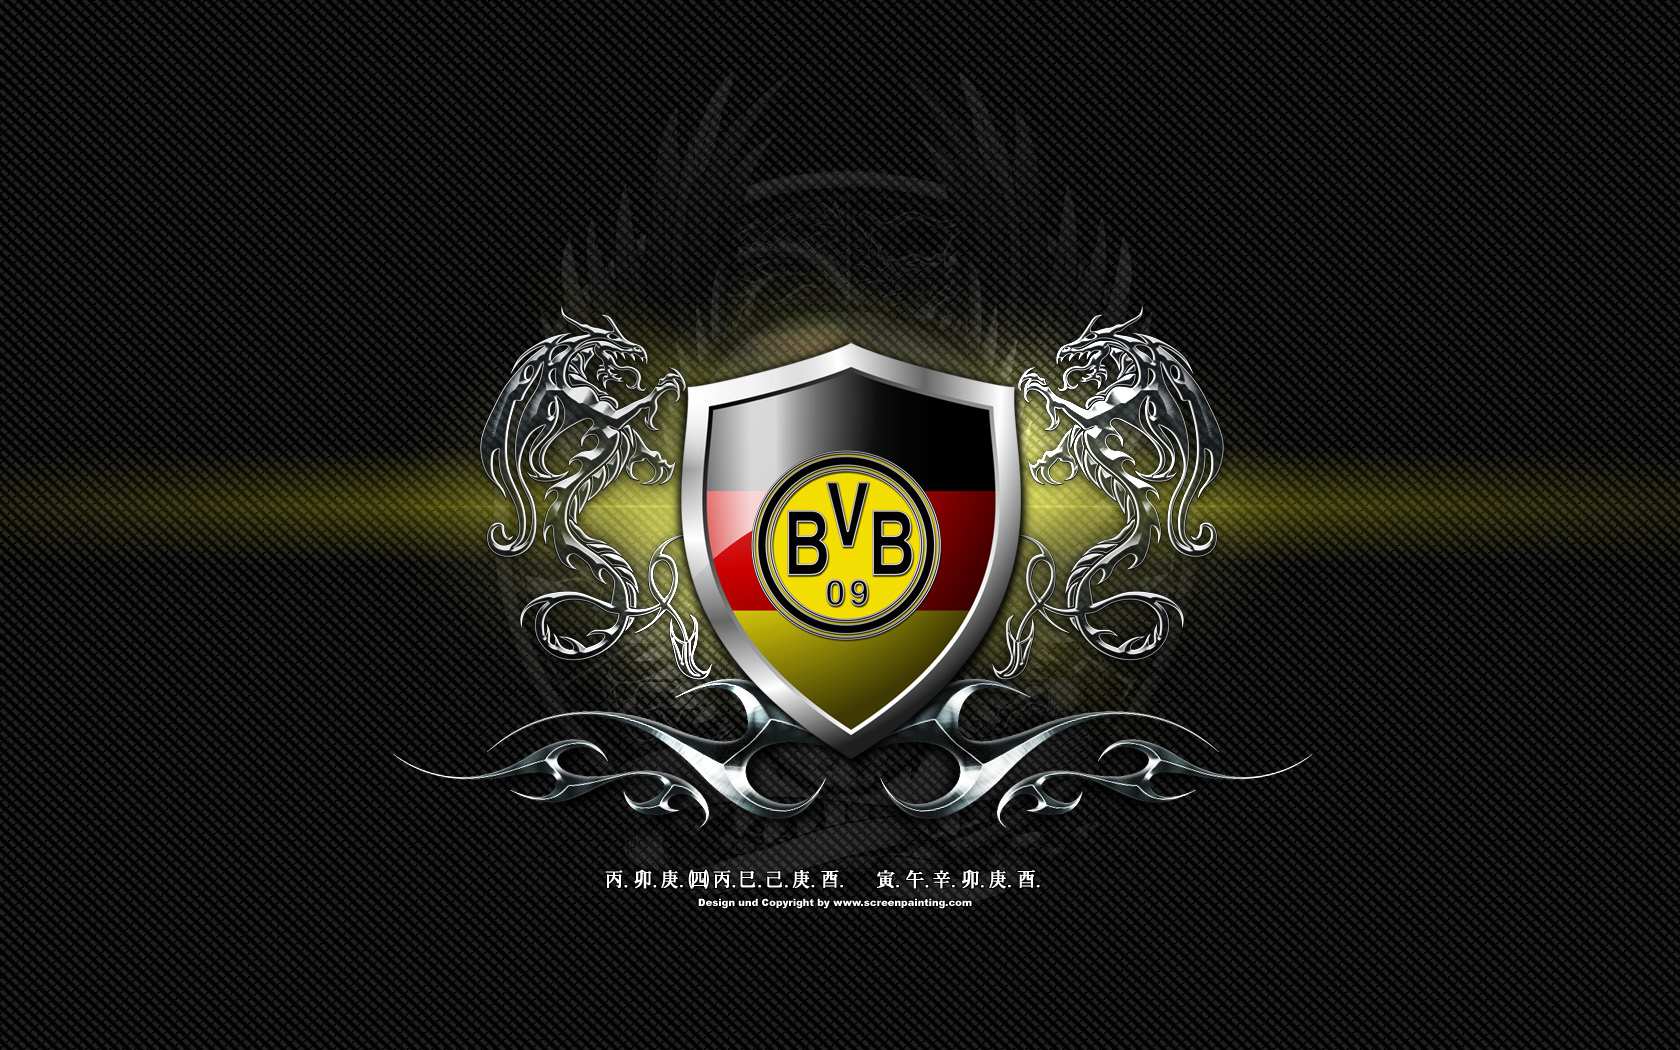 Bvb hd wallpaper full free hd wallpapers - Wallpaper picture ...